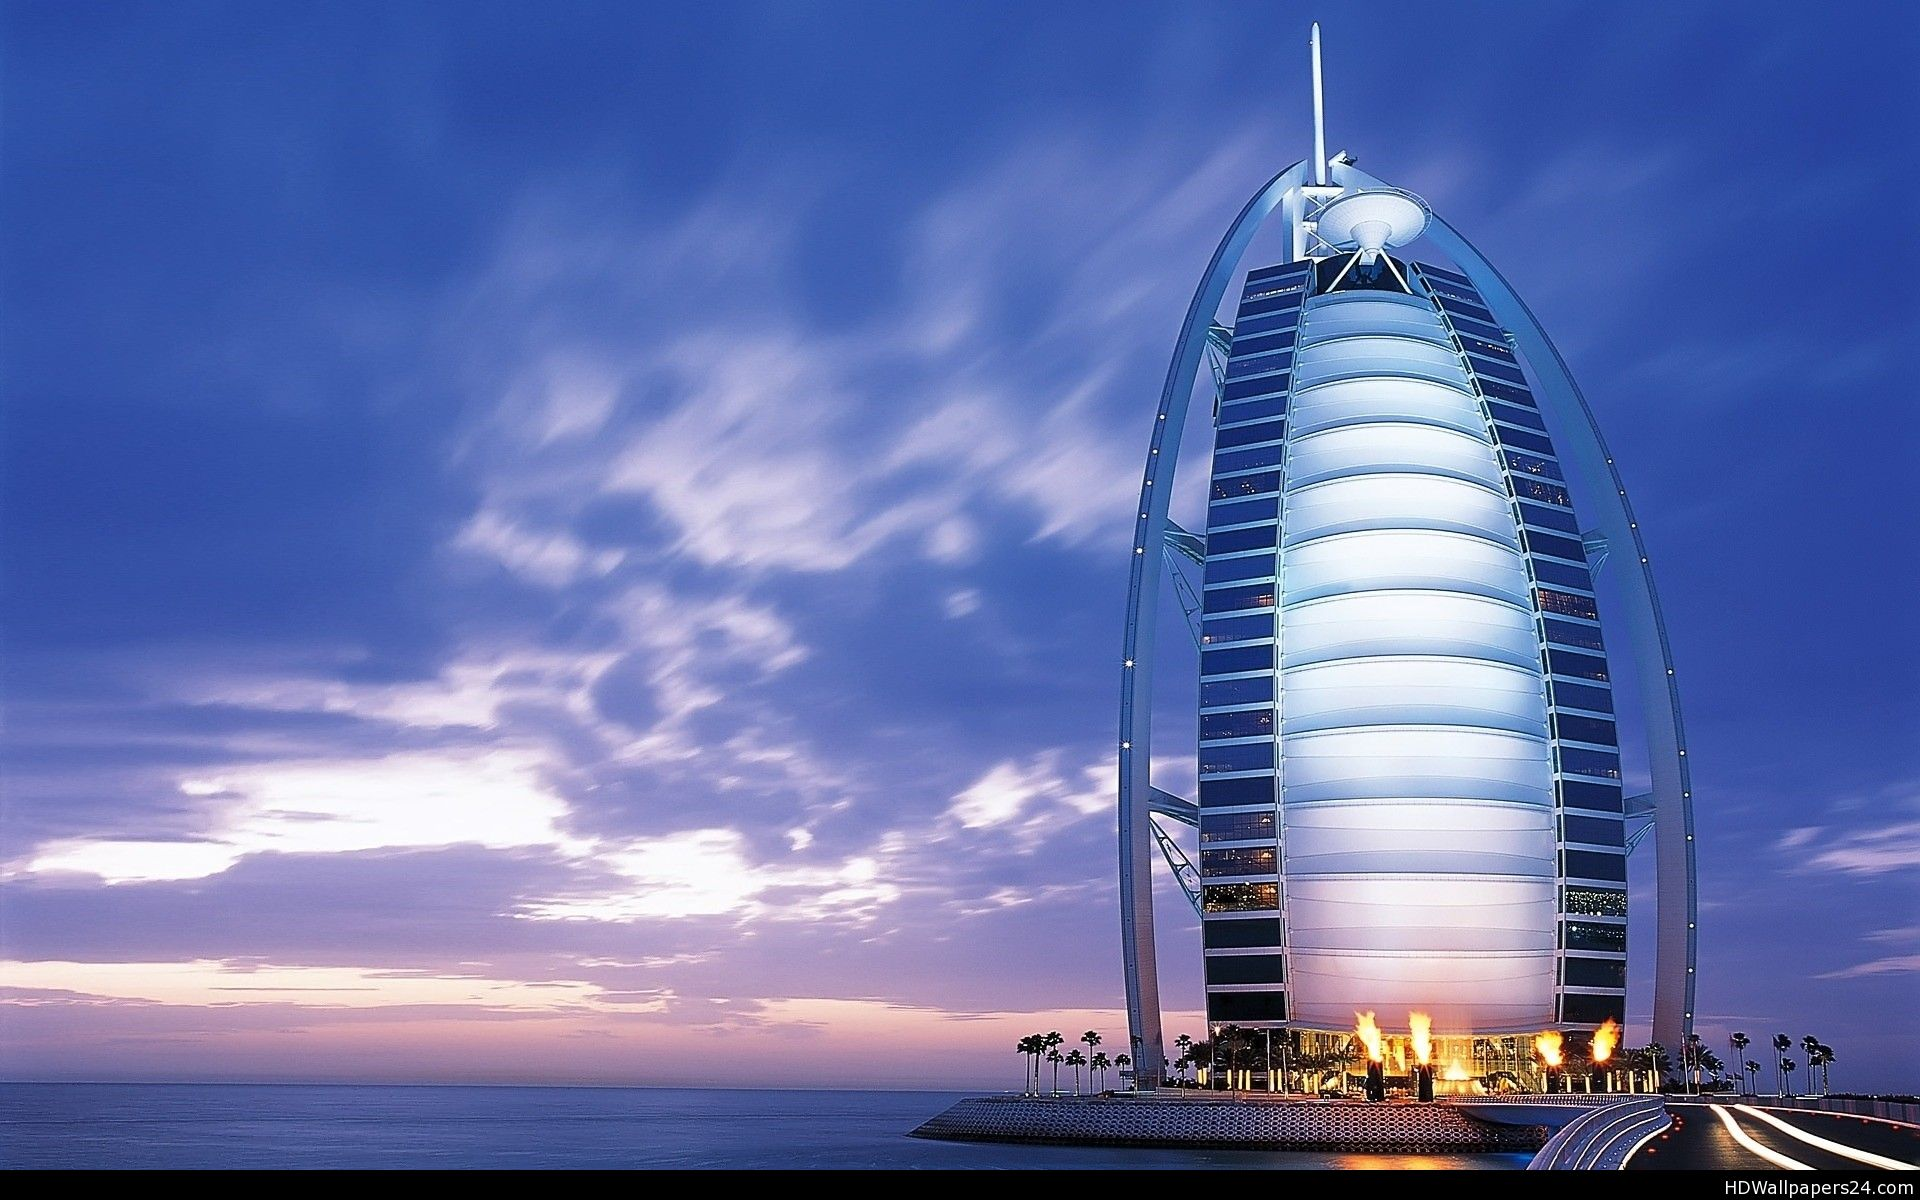 Amazing burj al arab jumeirah dubai wide at night hd for Burj al arab